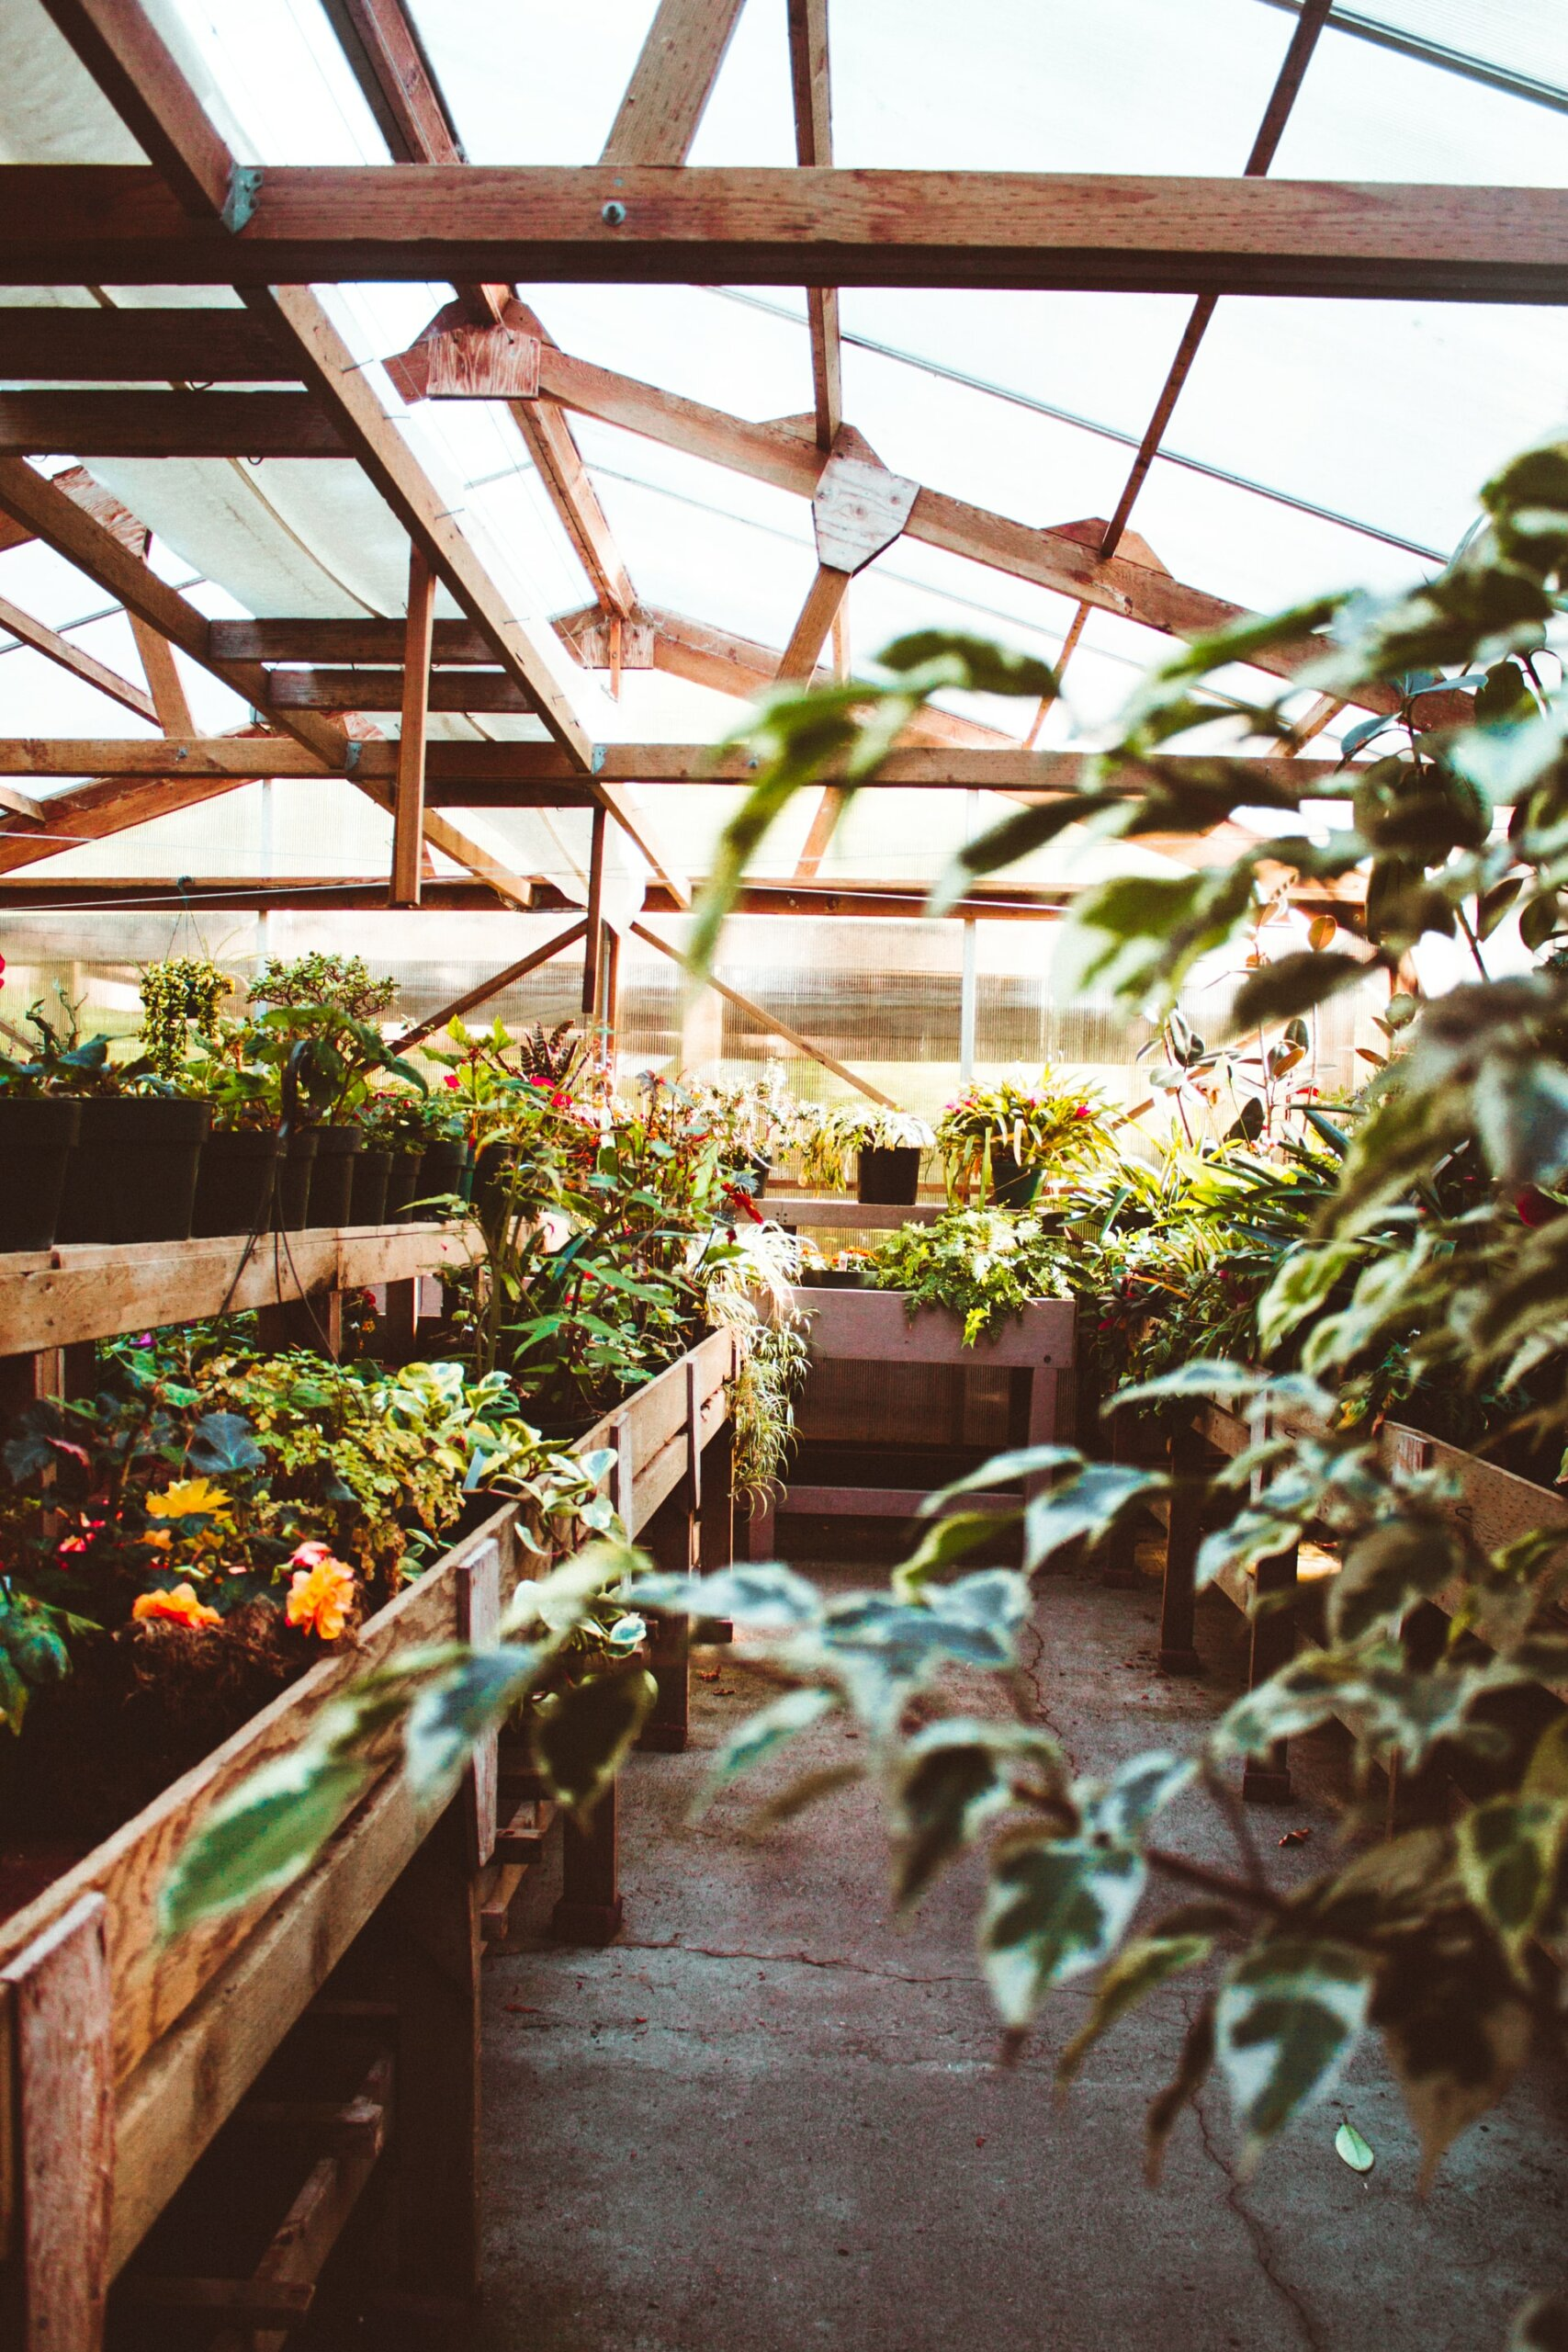 How to Get Your Garden Ready for Fall